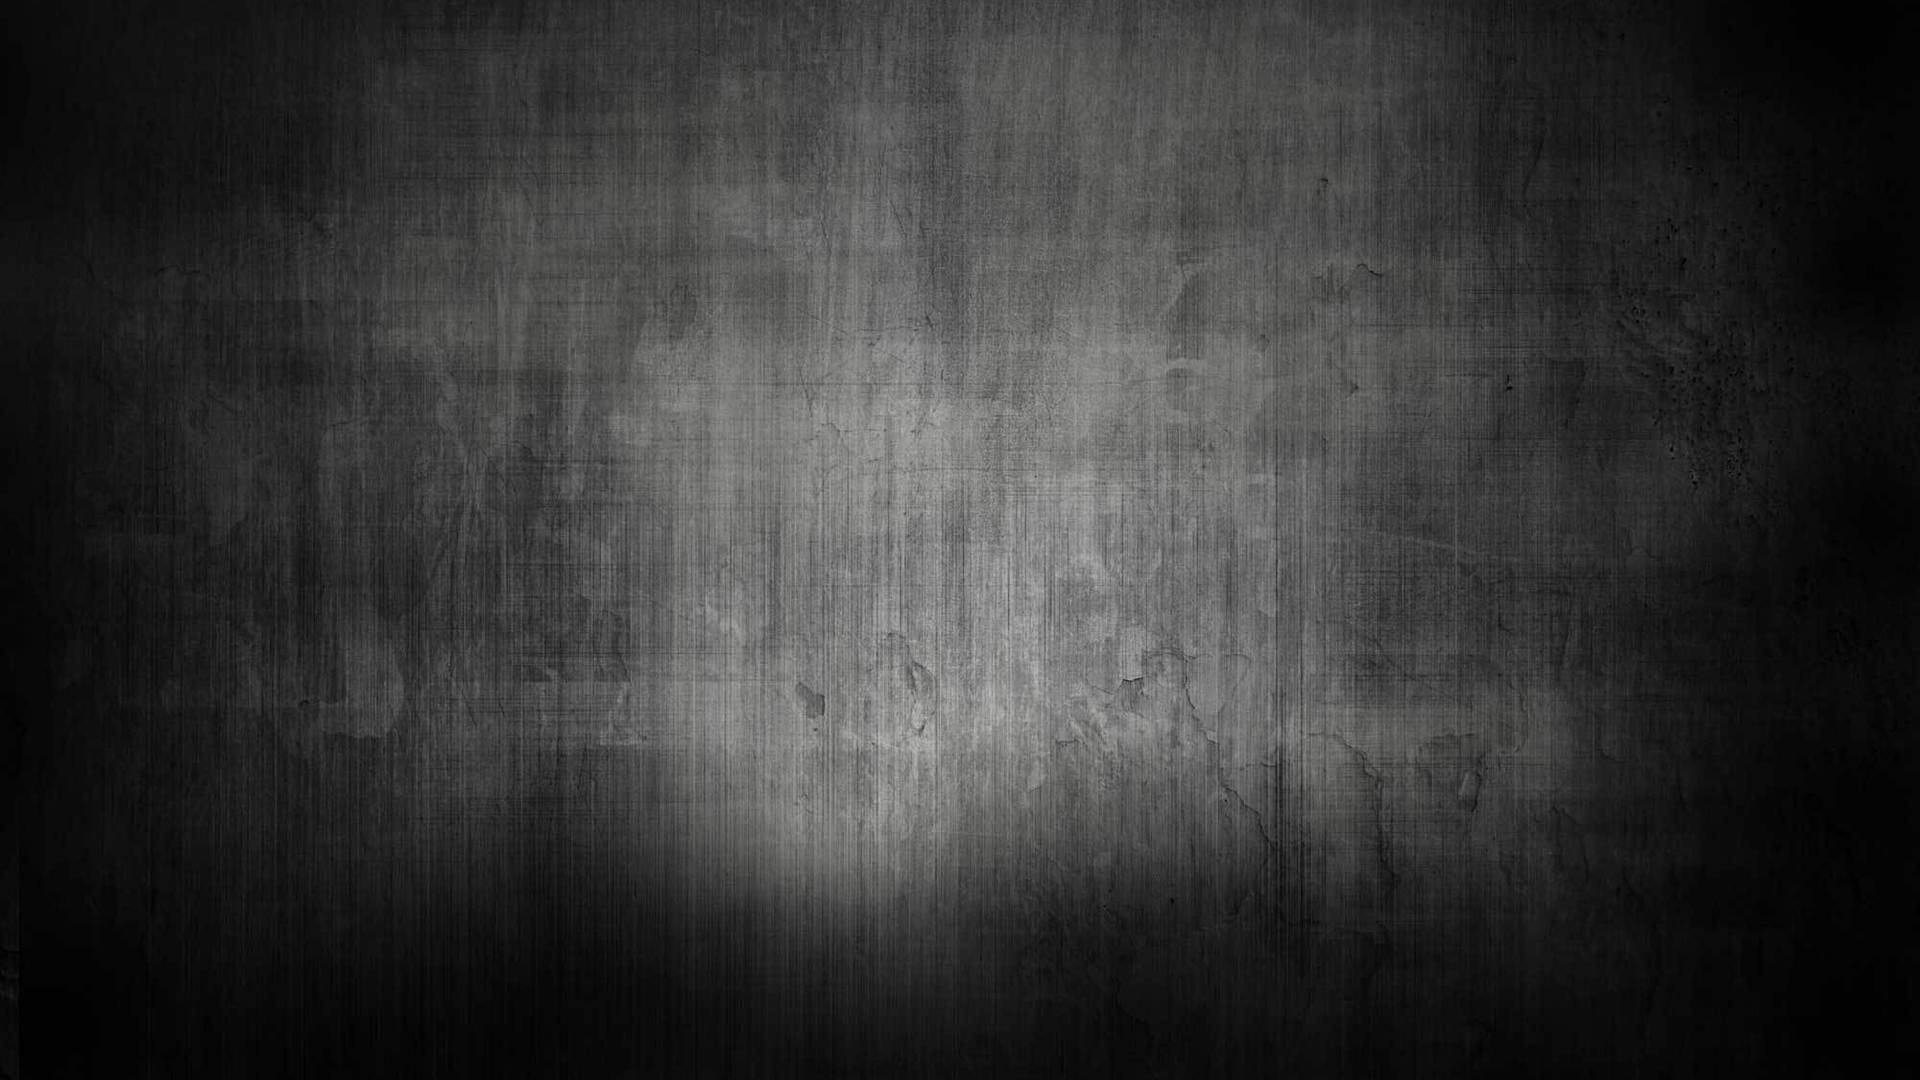 Download-dark-spot-background-texture-resolution-description-HD-background-wallpaper-wp3804779